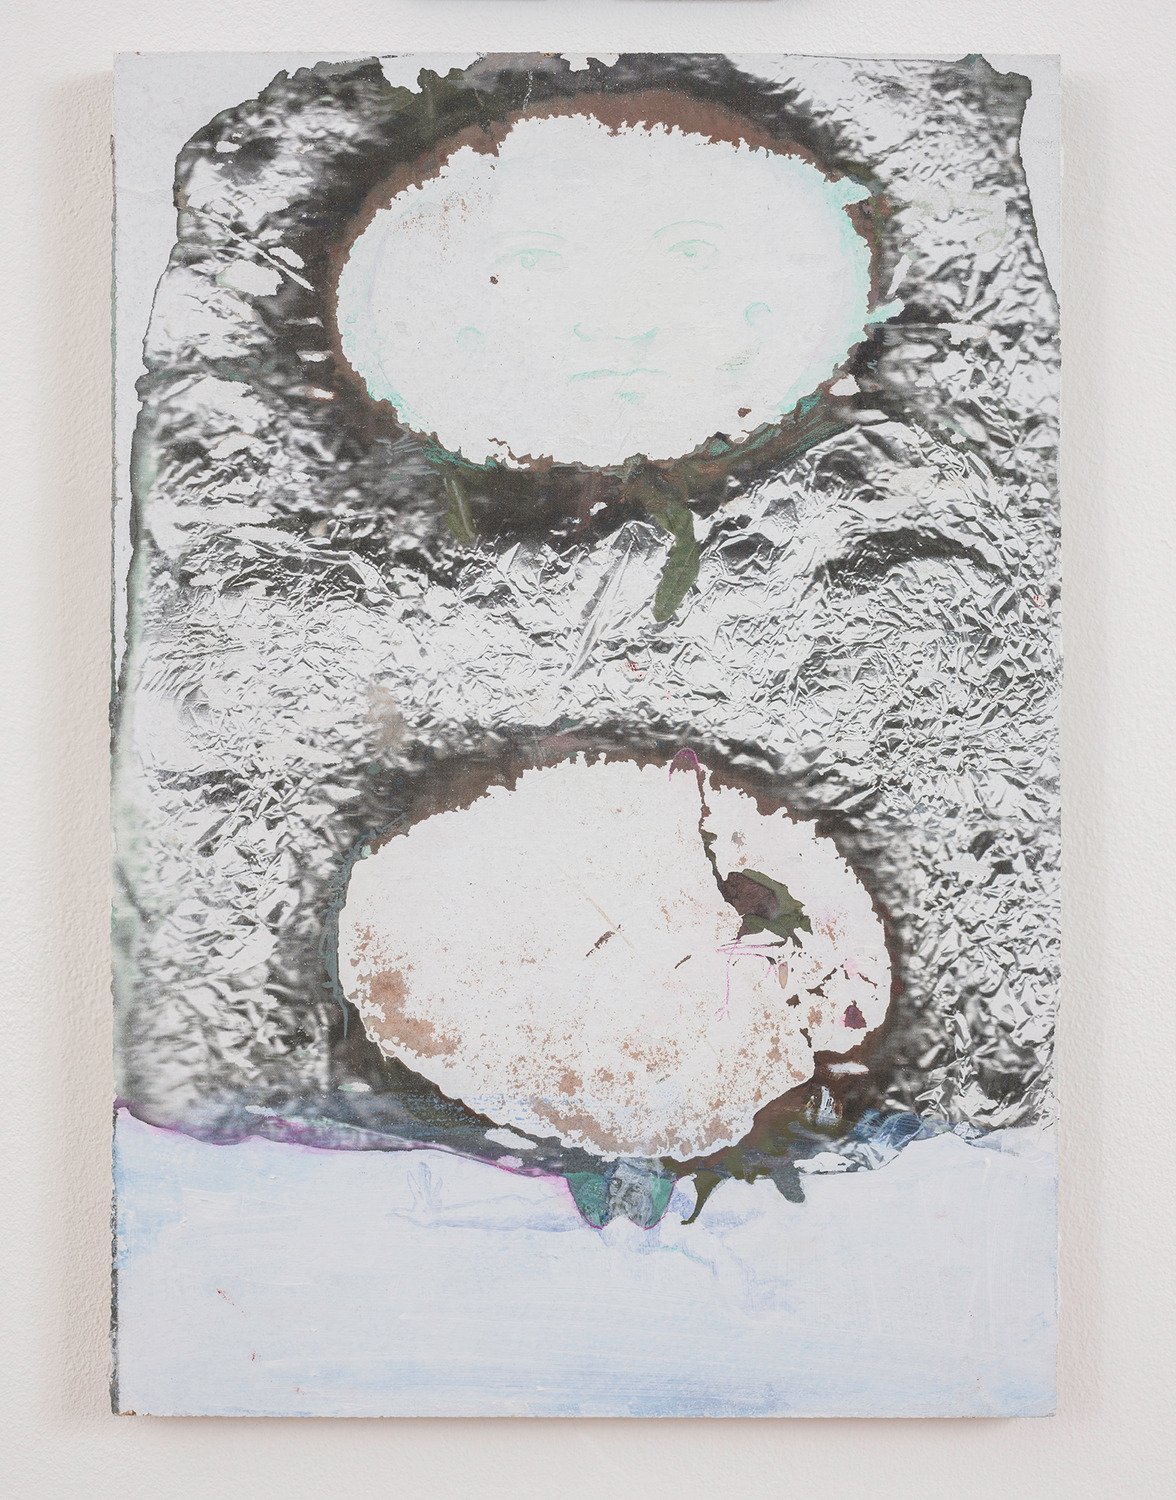 King Pitta, 2014, Toner transfer, watercolour pencil, acrylic and oil paint on chipboard, 41.2 x 29 x 1.9 cm